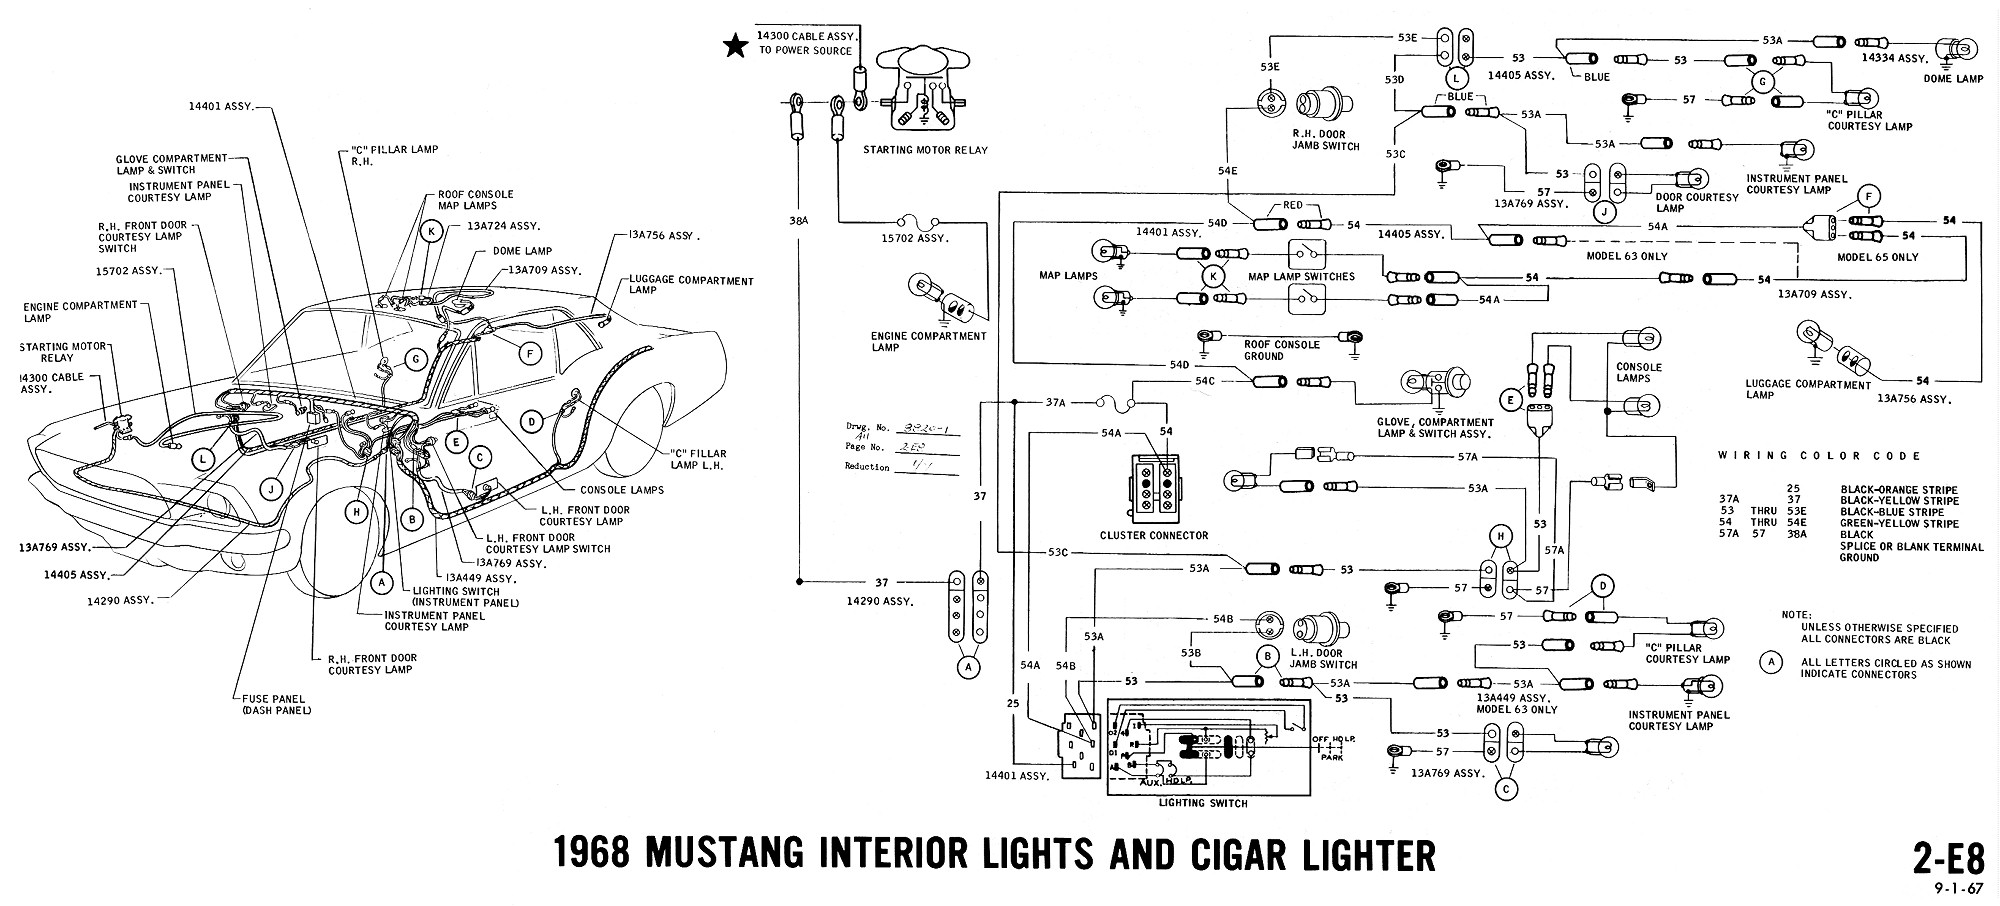 1968 Mustang Wiring Diagram Vacuum Schematics on electrical wiring diagram symbols